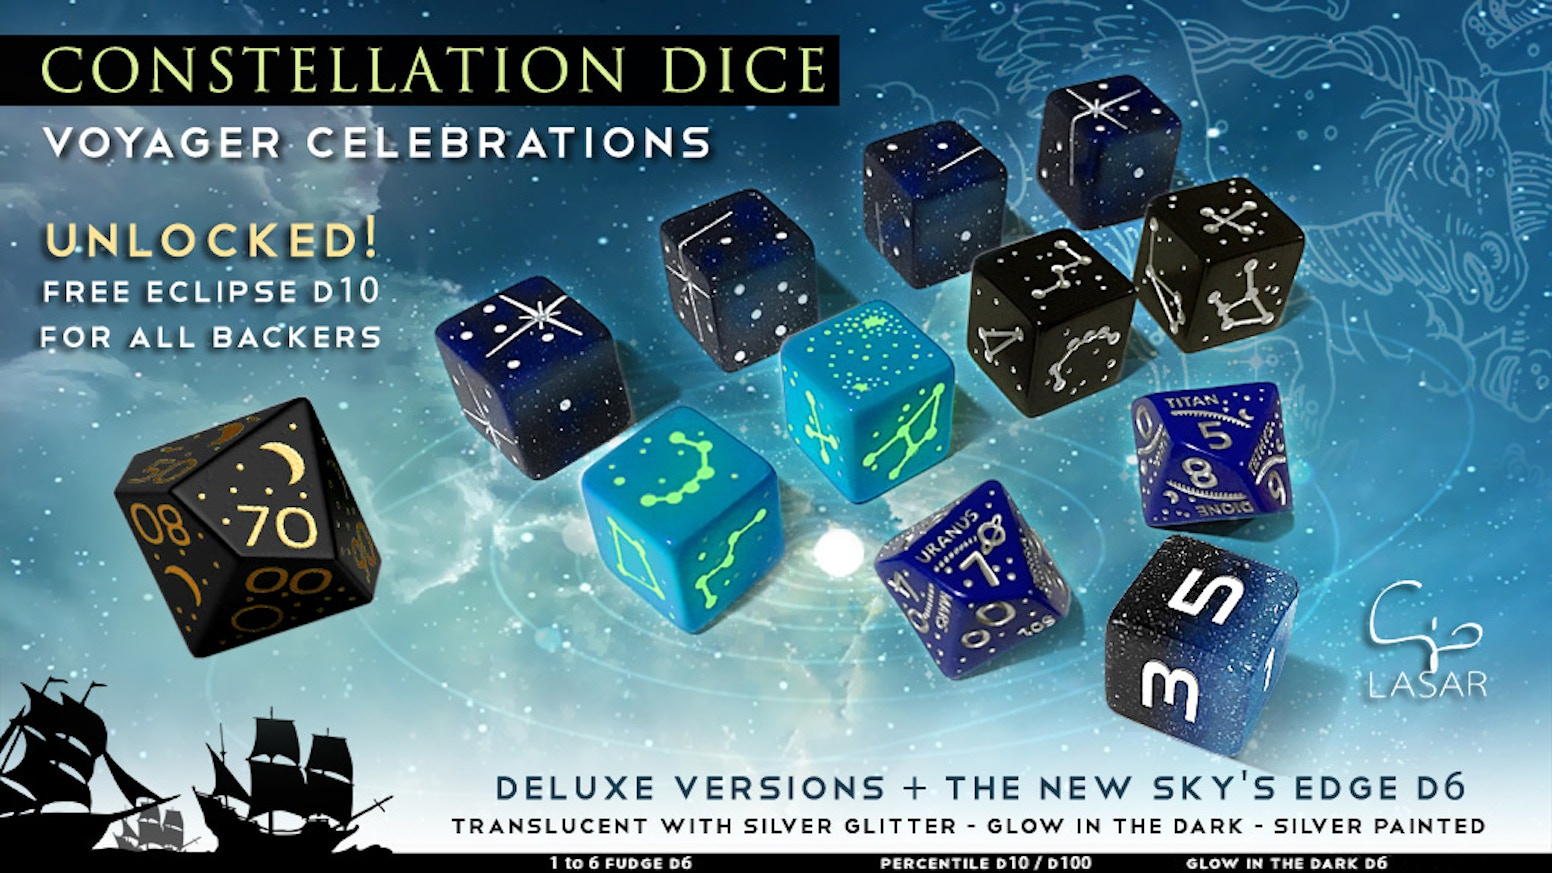 Glow-in-the-dark (or Silver Painted) FULL Sets, Translucent Nebula Fudge/FATE d6, the new Sky's Edge d6 and (stretch goal) Eclipse d10!